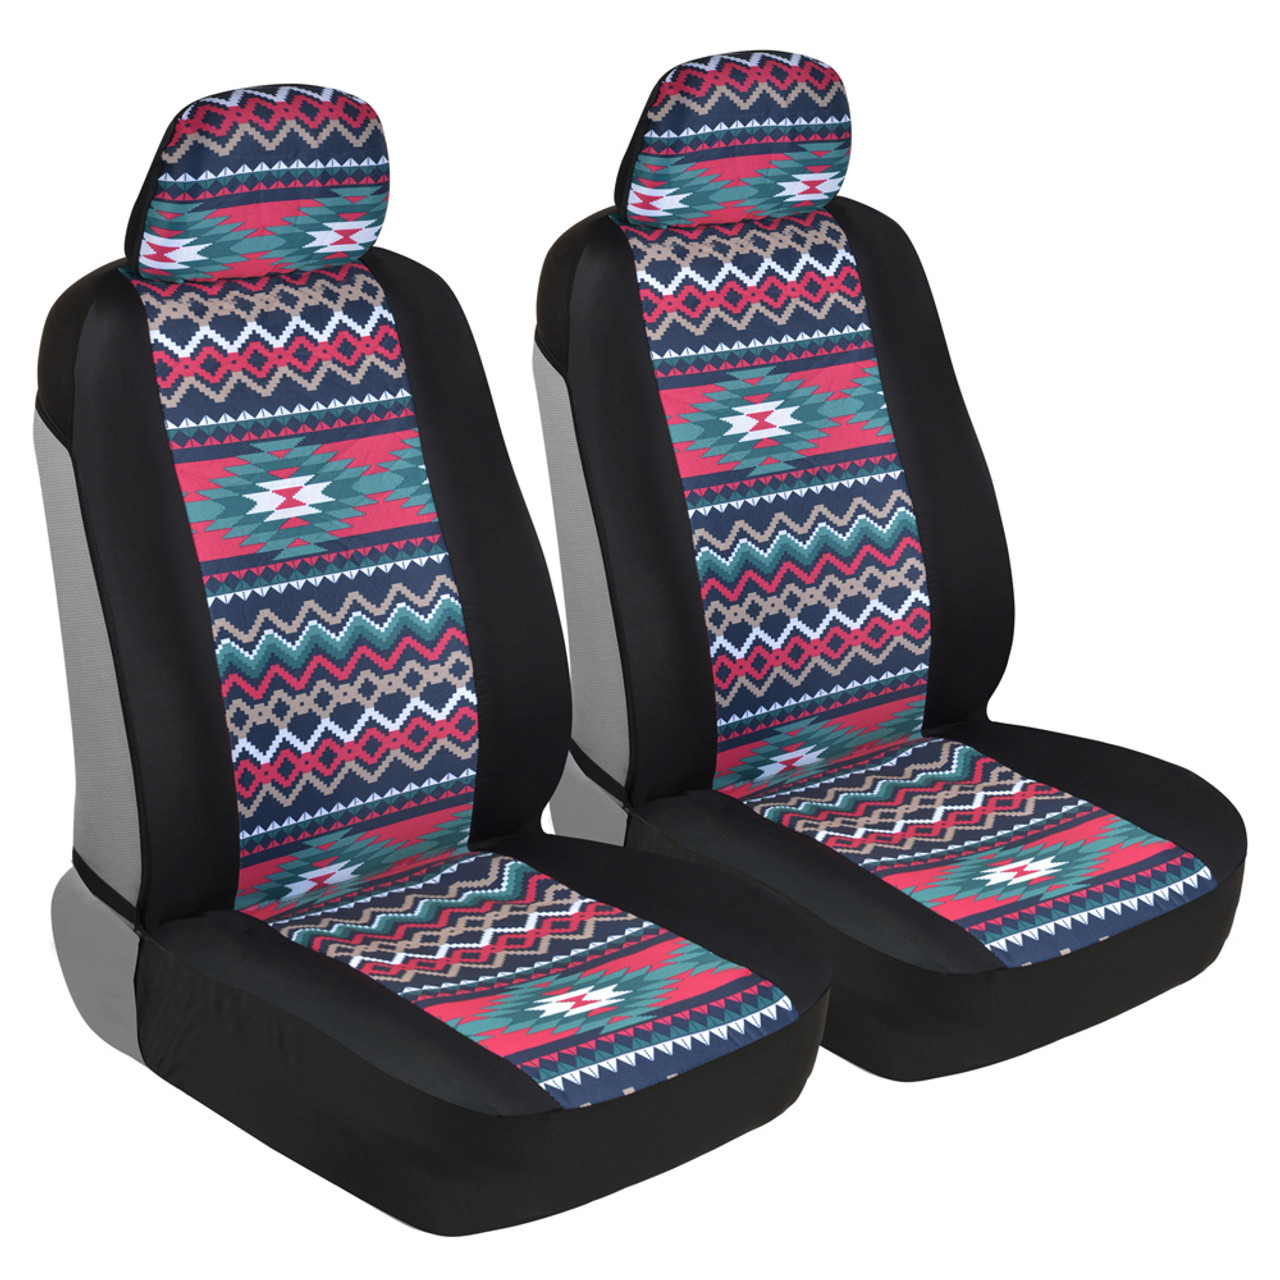 Enjoyable Two Tone Pattern Car Seat Covers Sideless Chic Style Soft Flexible Polyester Inca Tocapu Pattern Andrewgaddart Wooden Chair Designs For Living Room Andrewgaddartcom